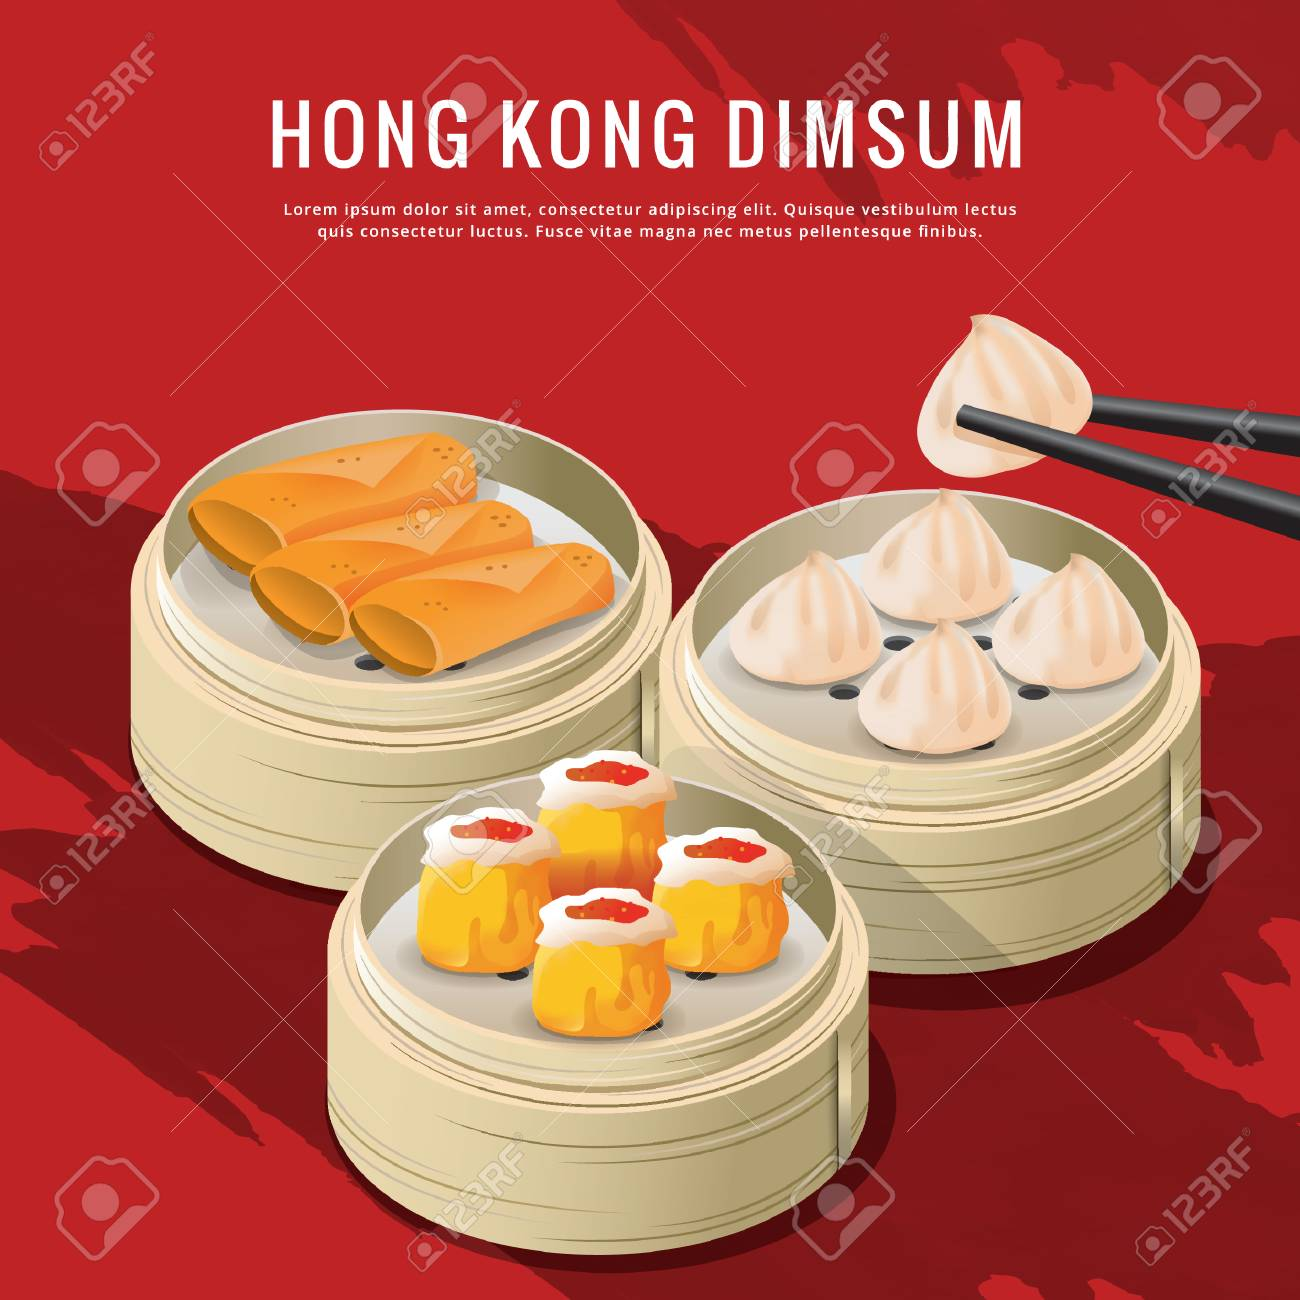 hong kong dimsum royalty free cliparts vectors and stock illustration image 49755223 hong kong dimsum